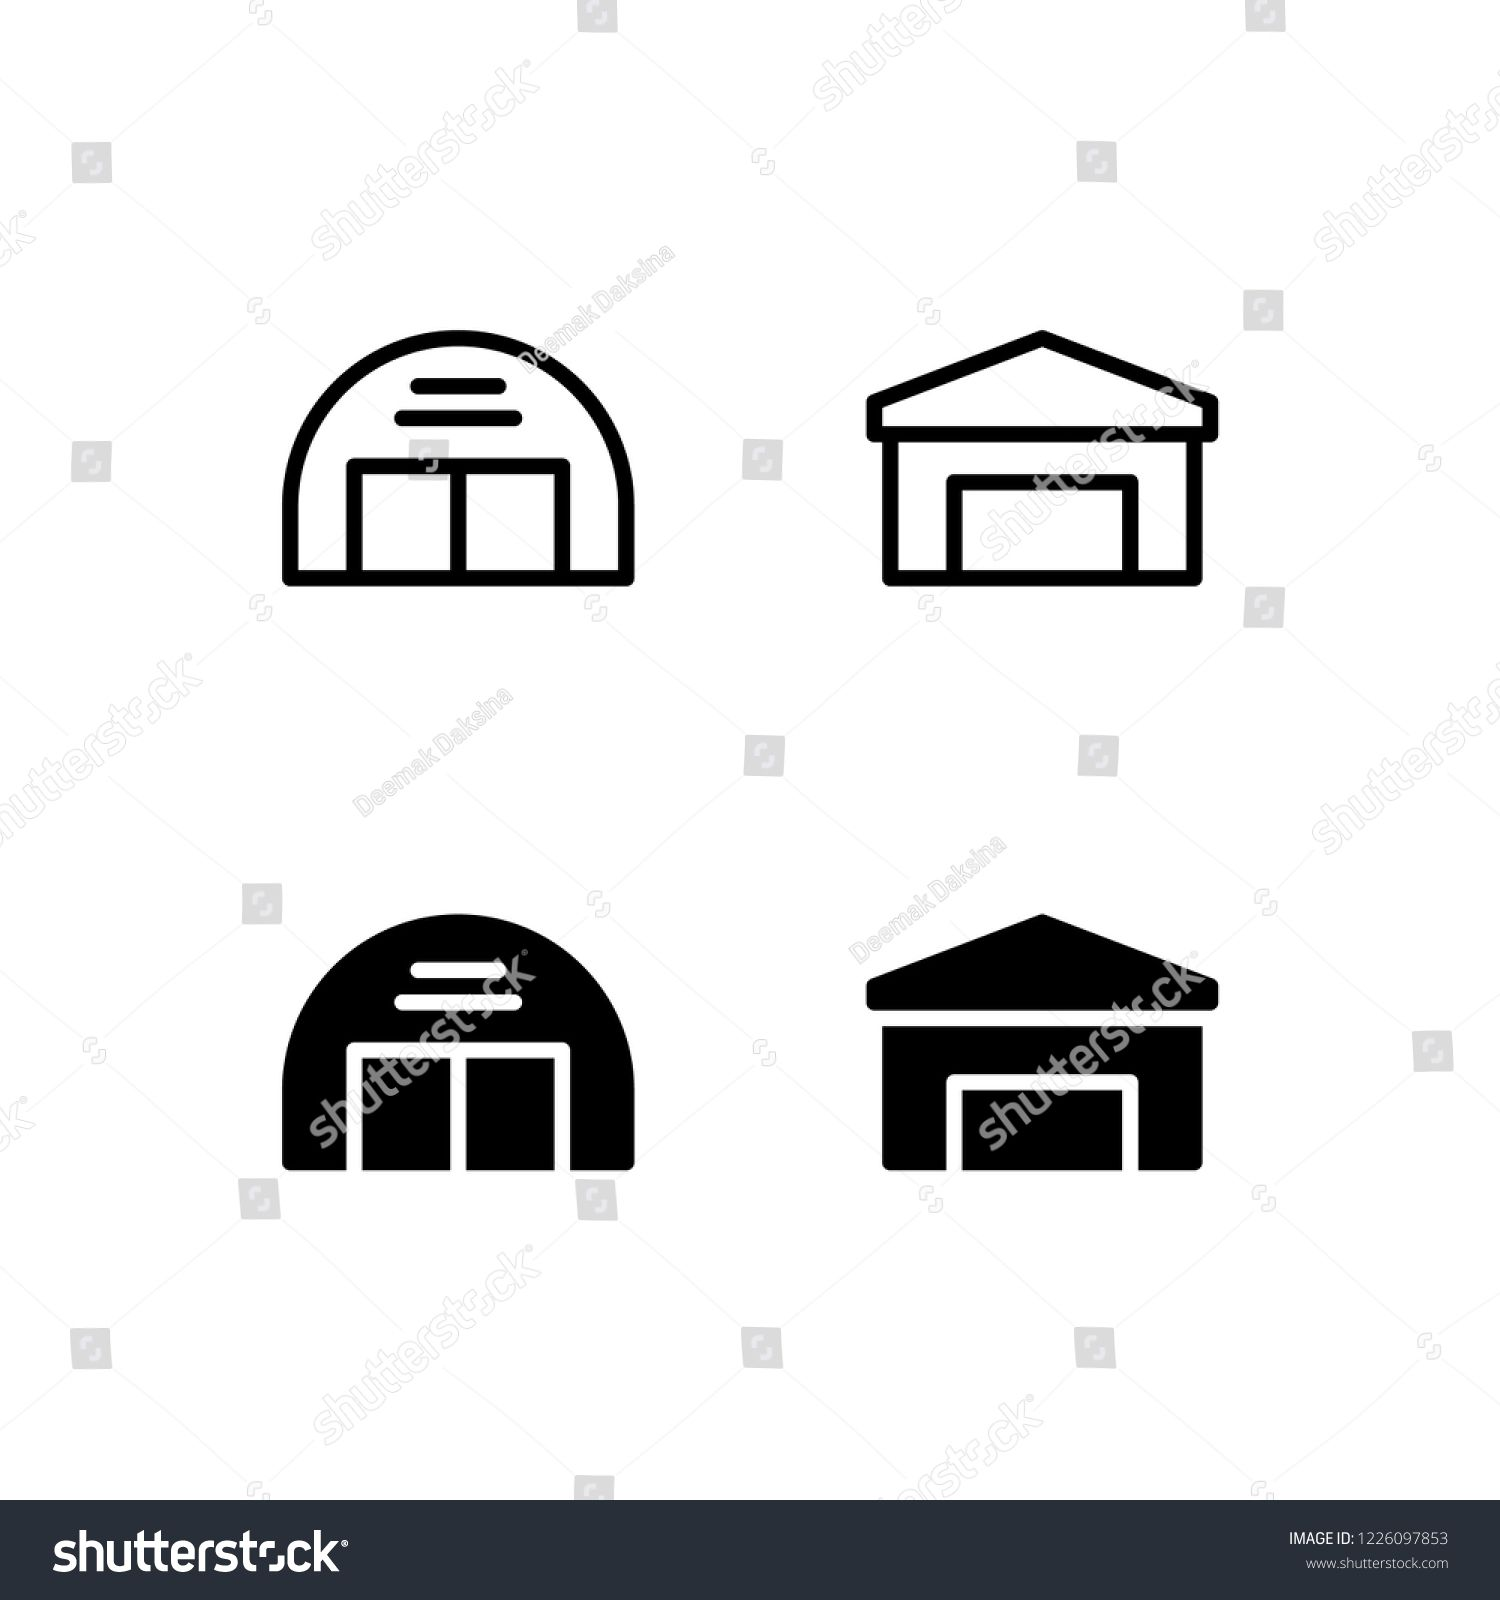 Hangar Icon Design Hangar, Garage, Airport, Aviation, Shed